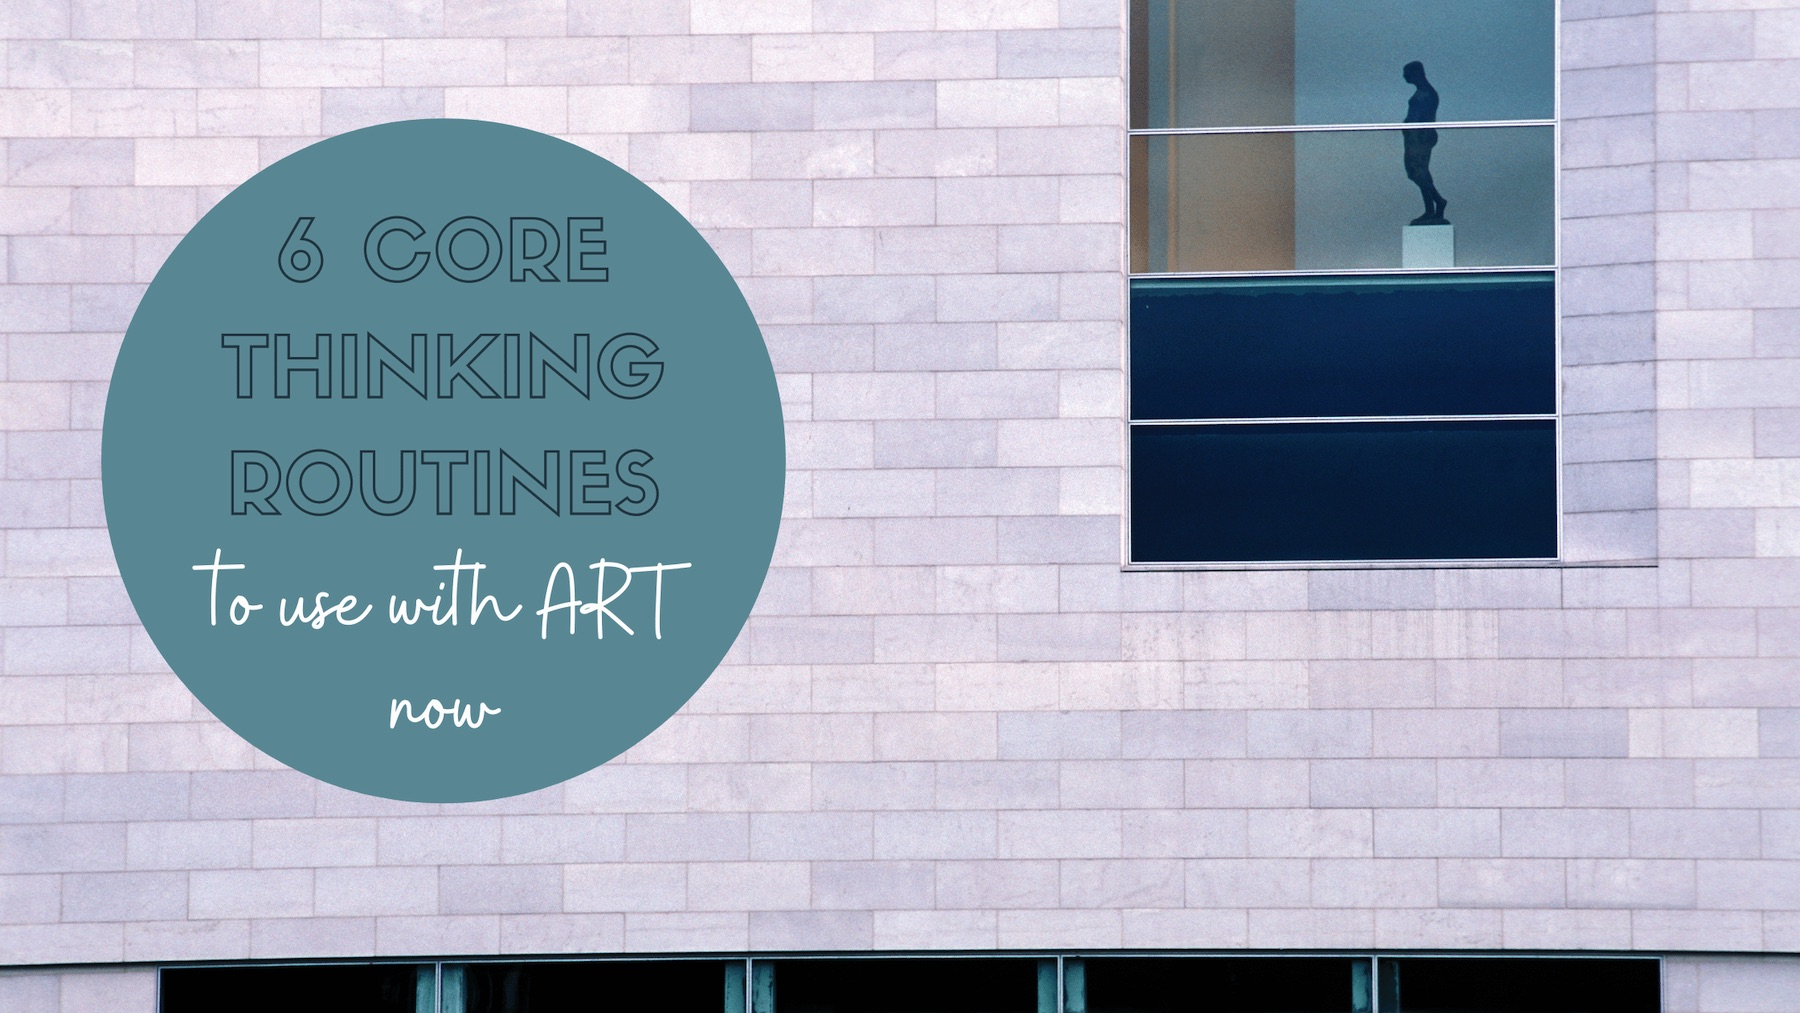 6 core thinking routines to use with art now